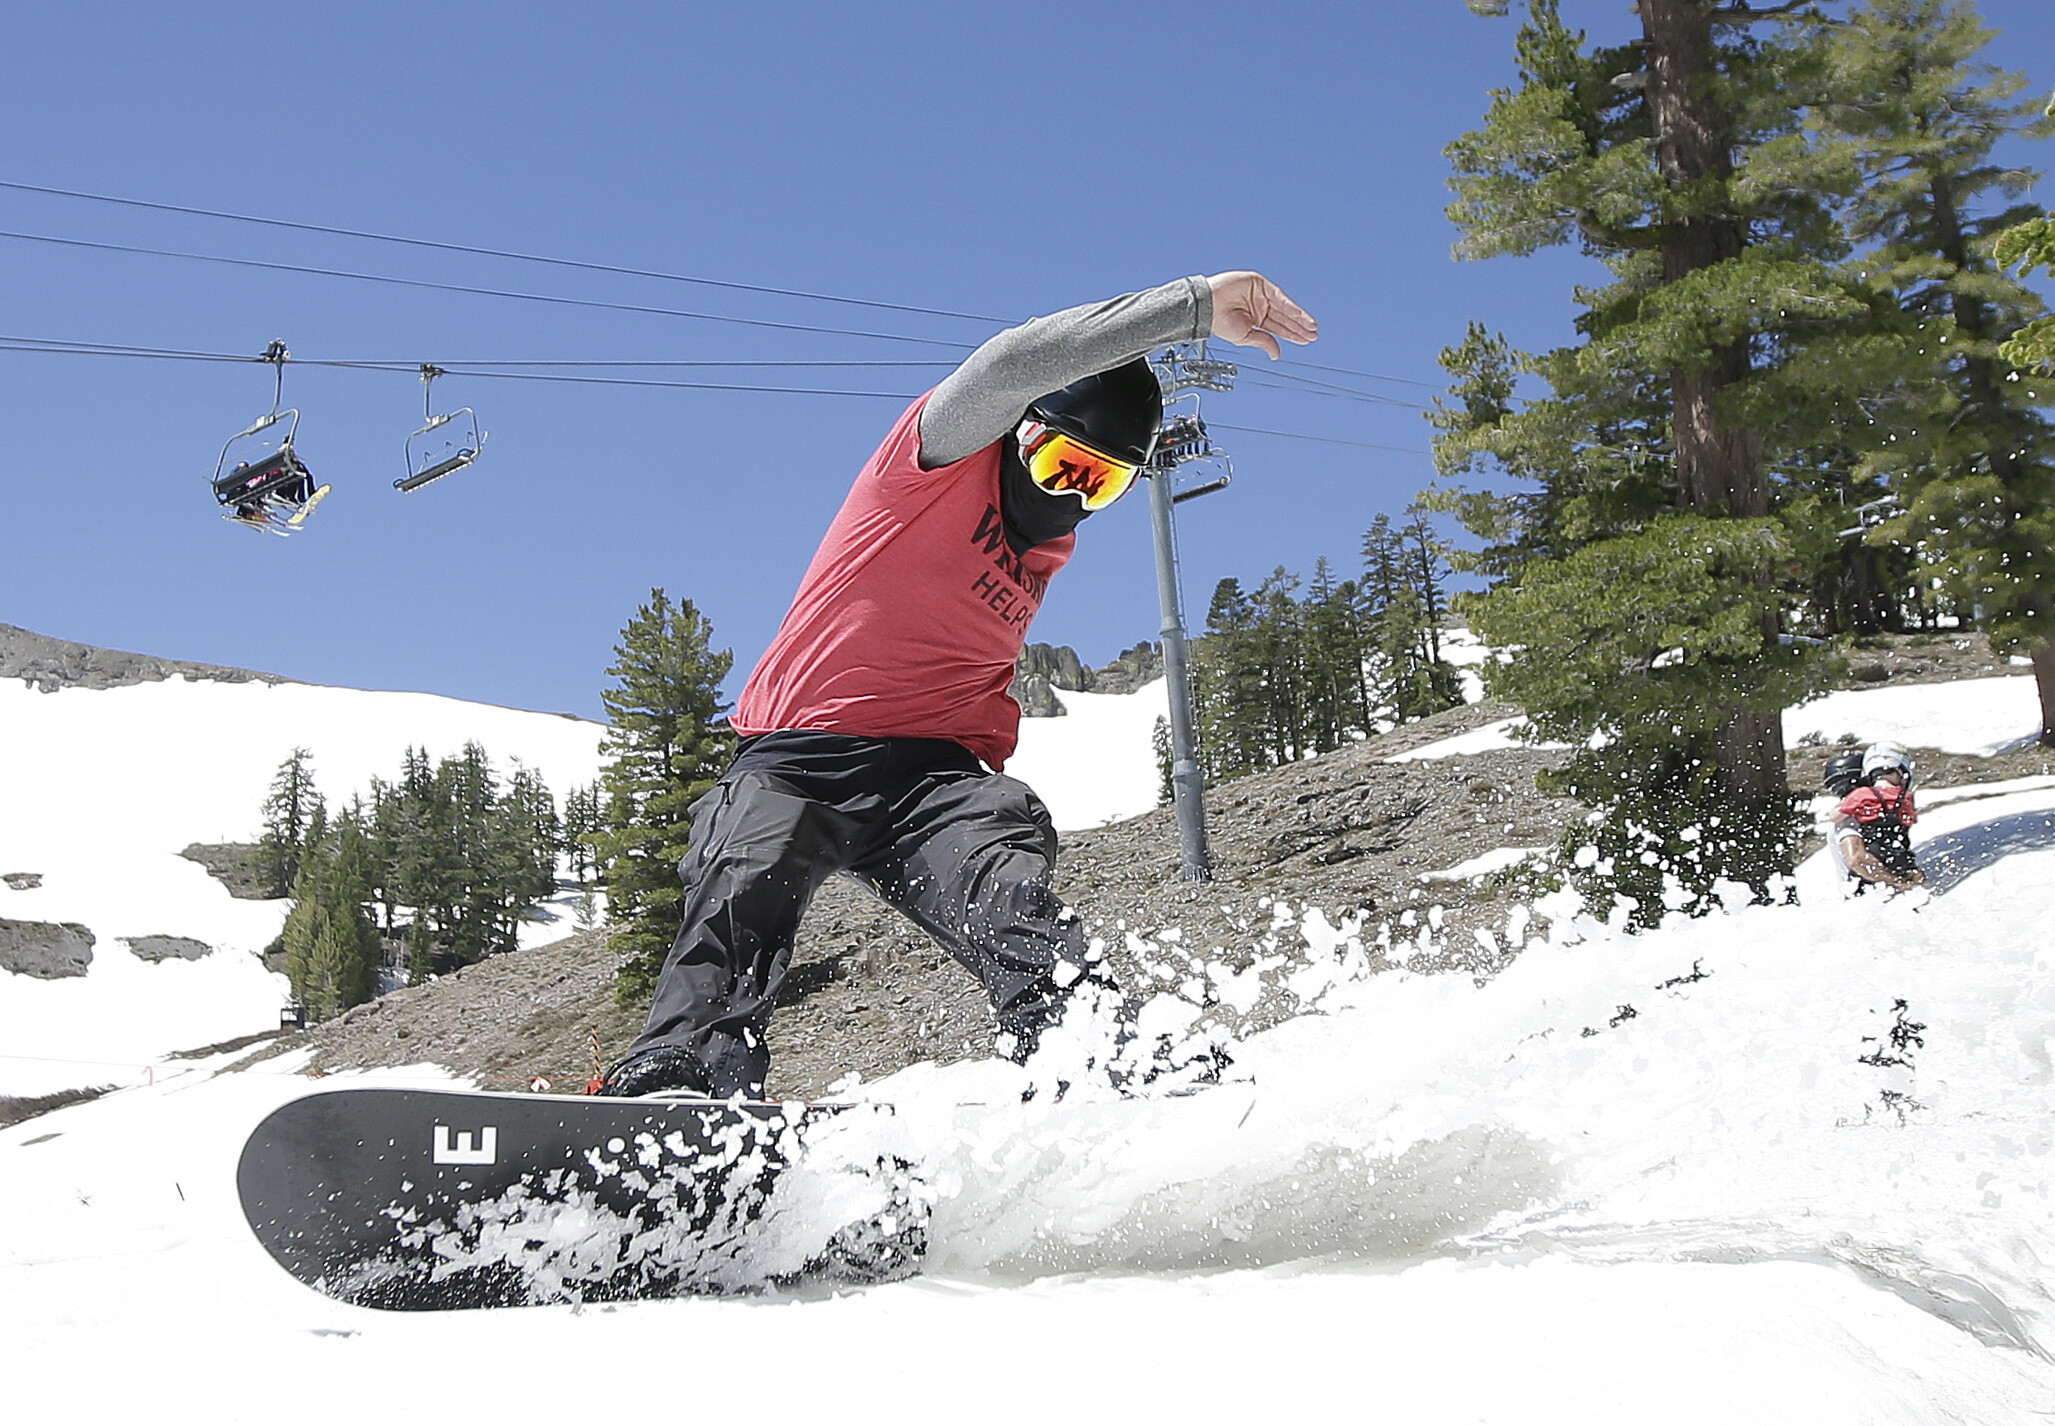 <i>Rich Pedroncelli/AP/FILE</i><br/>The Squaw Valley Alpine Meadows ski resort is changing its name to Palisades Tahoe